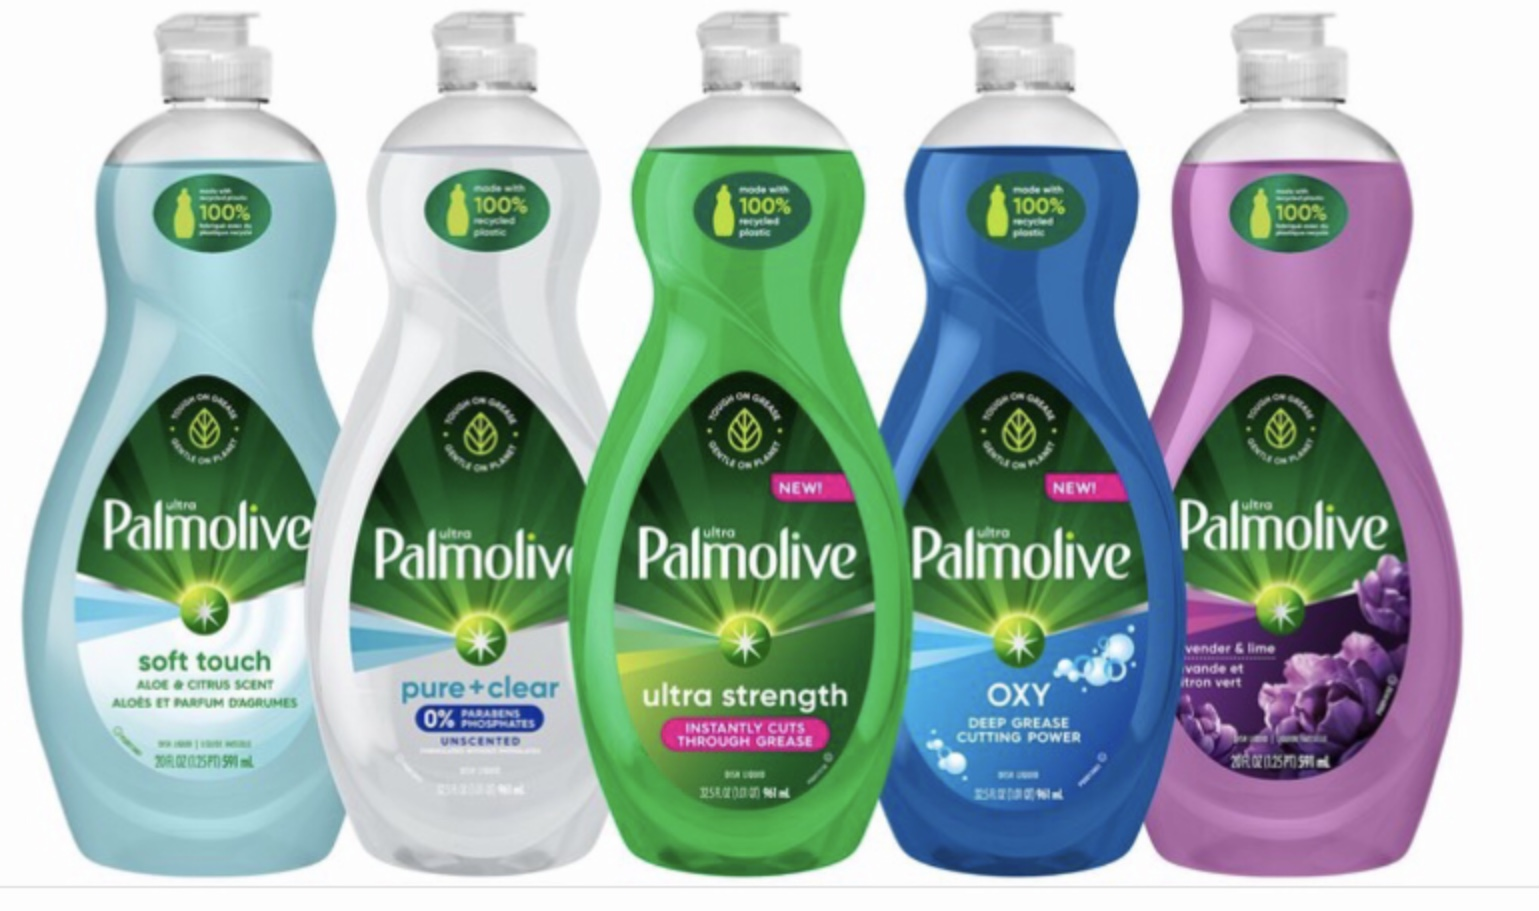 Palmolive Unveils 100% Post-Consumer Recycled Plastic Bottles in Drive toward Circular Economy